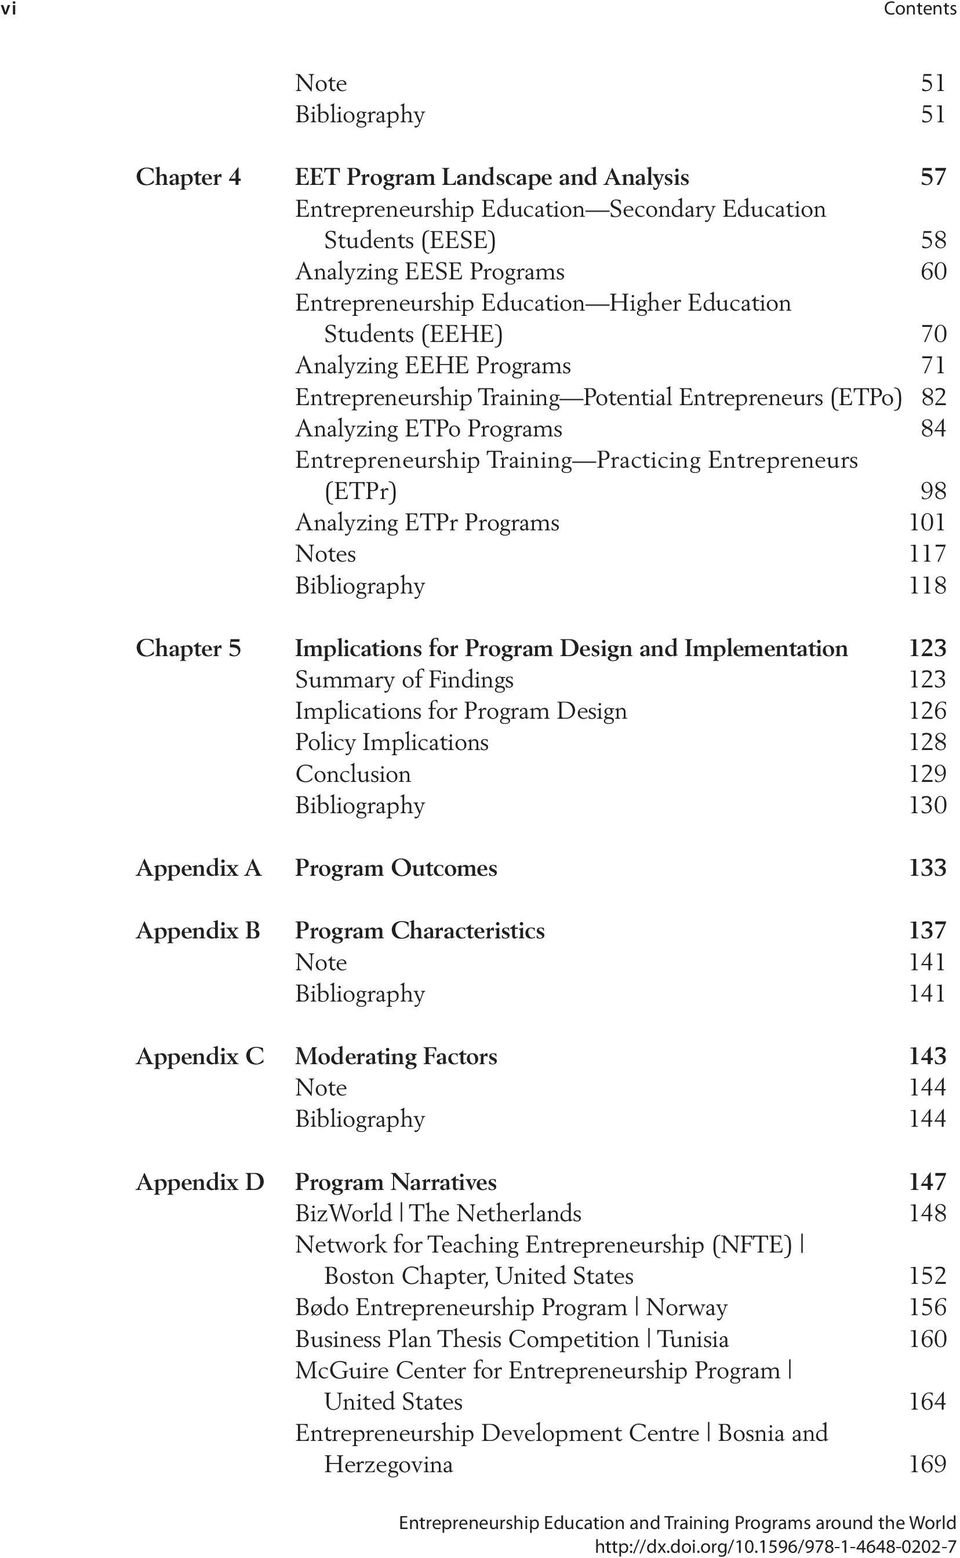 Entrepreneurs (ETPr) 98 Analyzing ETPr Programs 101 Notes 117 Bibliography 118 Chapter 5 Implications for Program Design and Implementation 123 Summary of Findings 123 Implications for Program Design